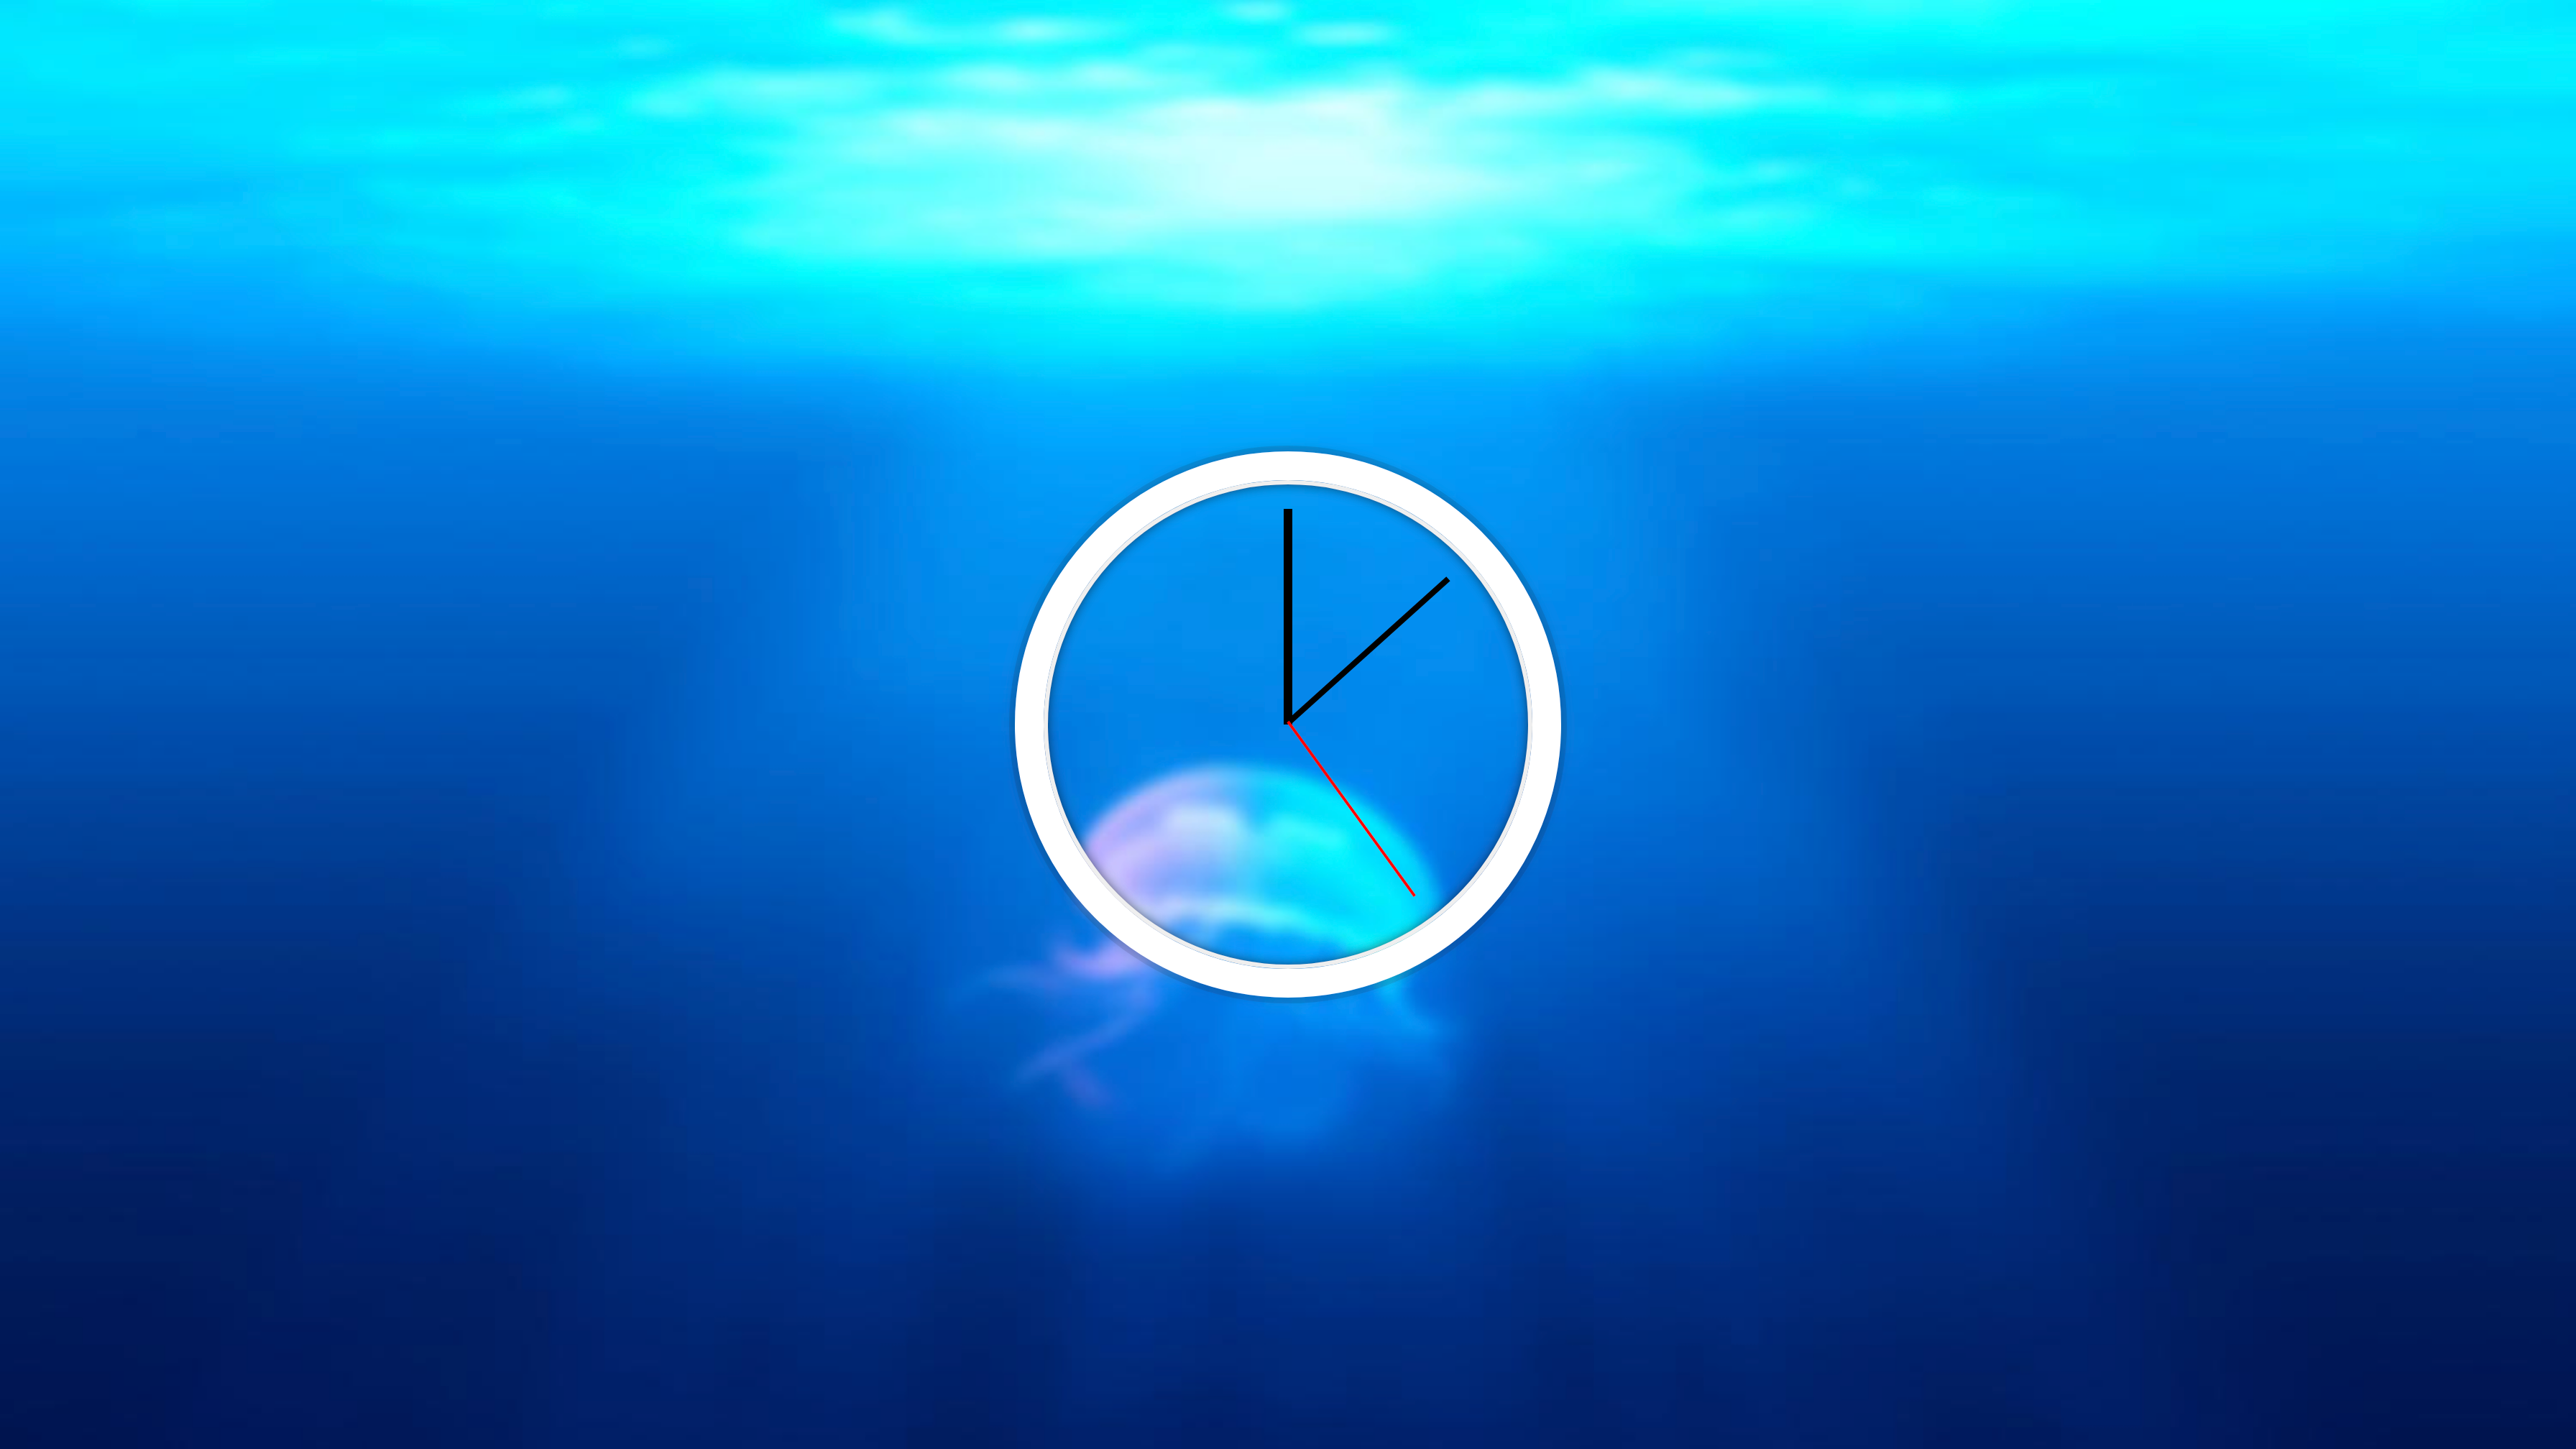 Clock built with JavaScript using the Date() object and a setInterval function to update the clock every second